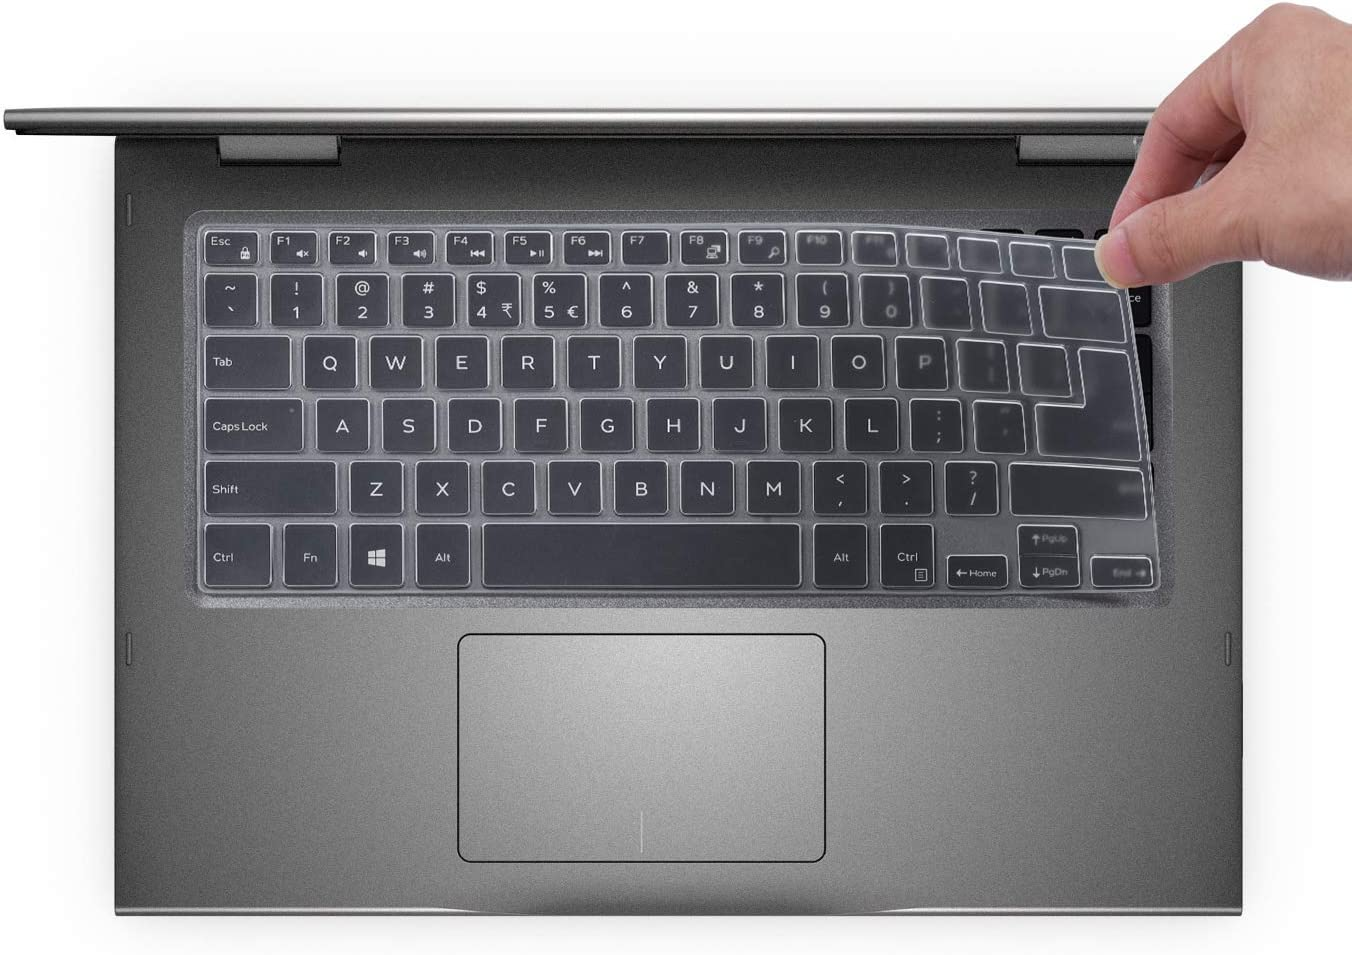 Keyboard Cover for 2020 2019 Dell Insprion 14 5000 2-in-1 5481 5482 5485 5488 5491 14 Inch, Dell Inspiron 14 5000 Accessories, Clear